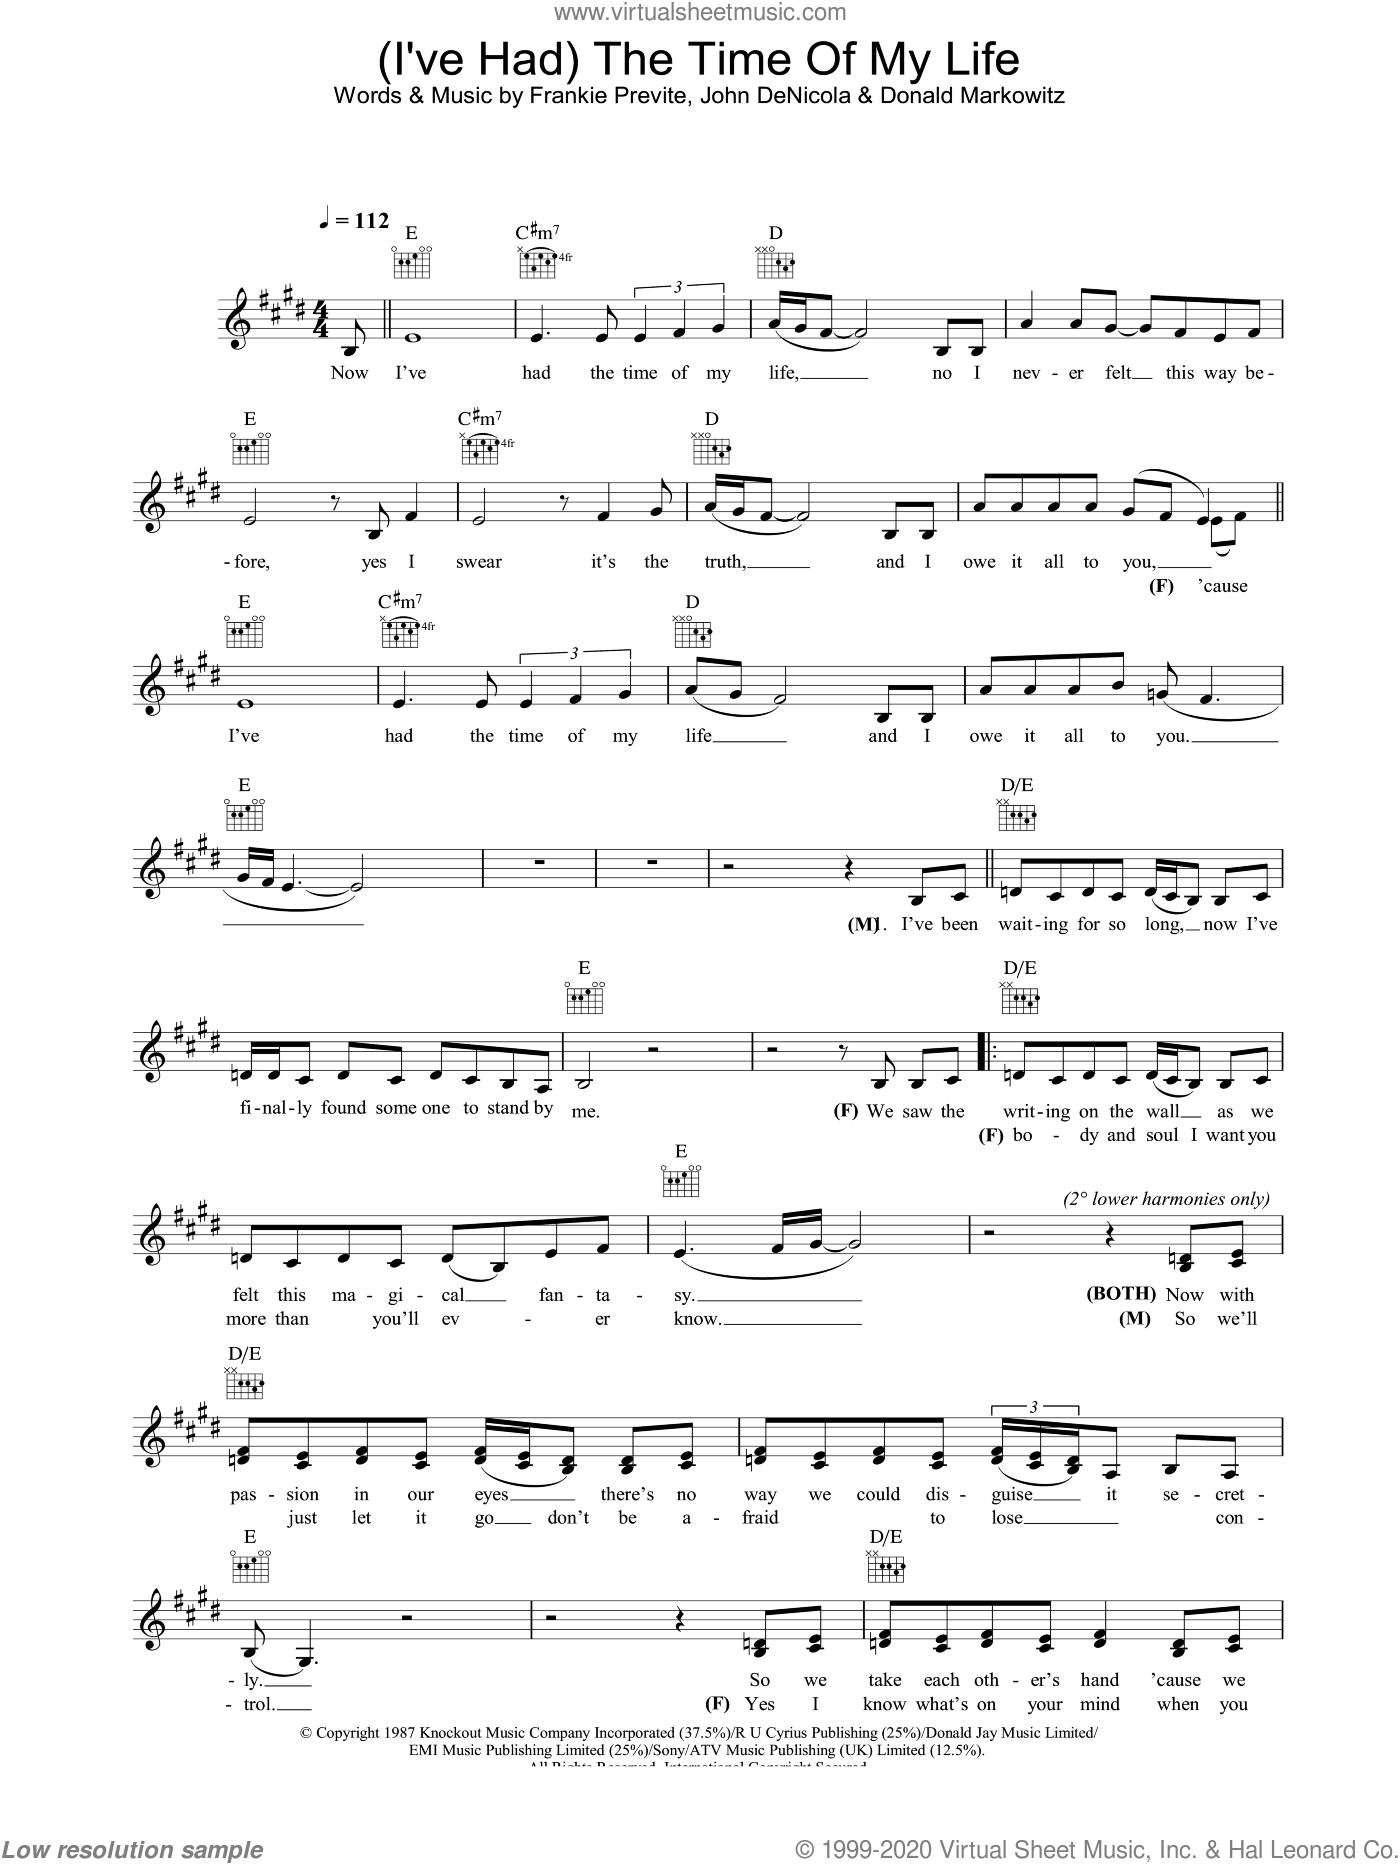 (I've Had) The Time Of My Life sheet music for voice and other instruments (fake book) by John DeNicola and Donald Markowitz. Score Image Preview.